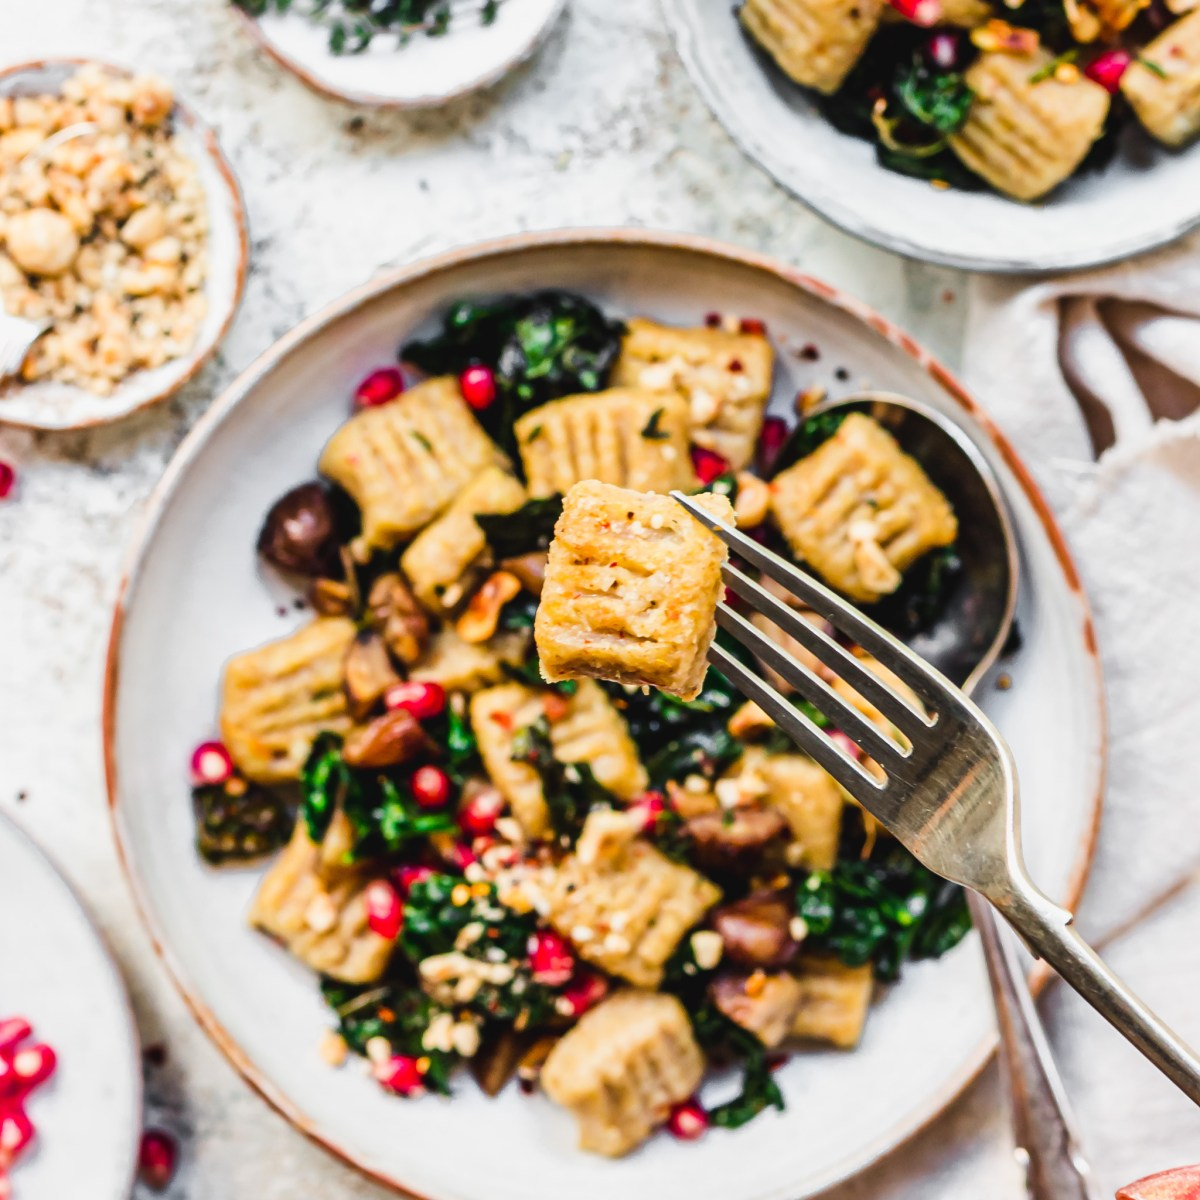 Parsnip Gnocchi with Chestnuts and Kale